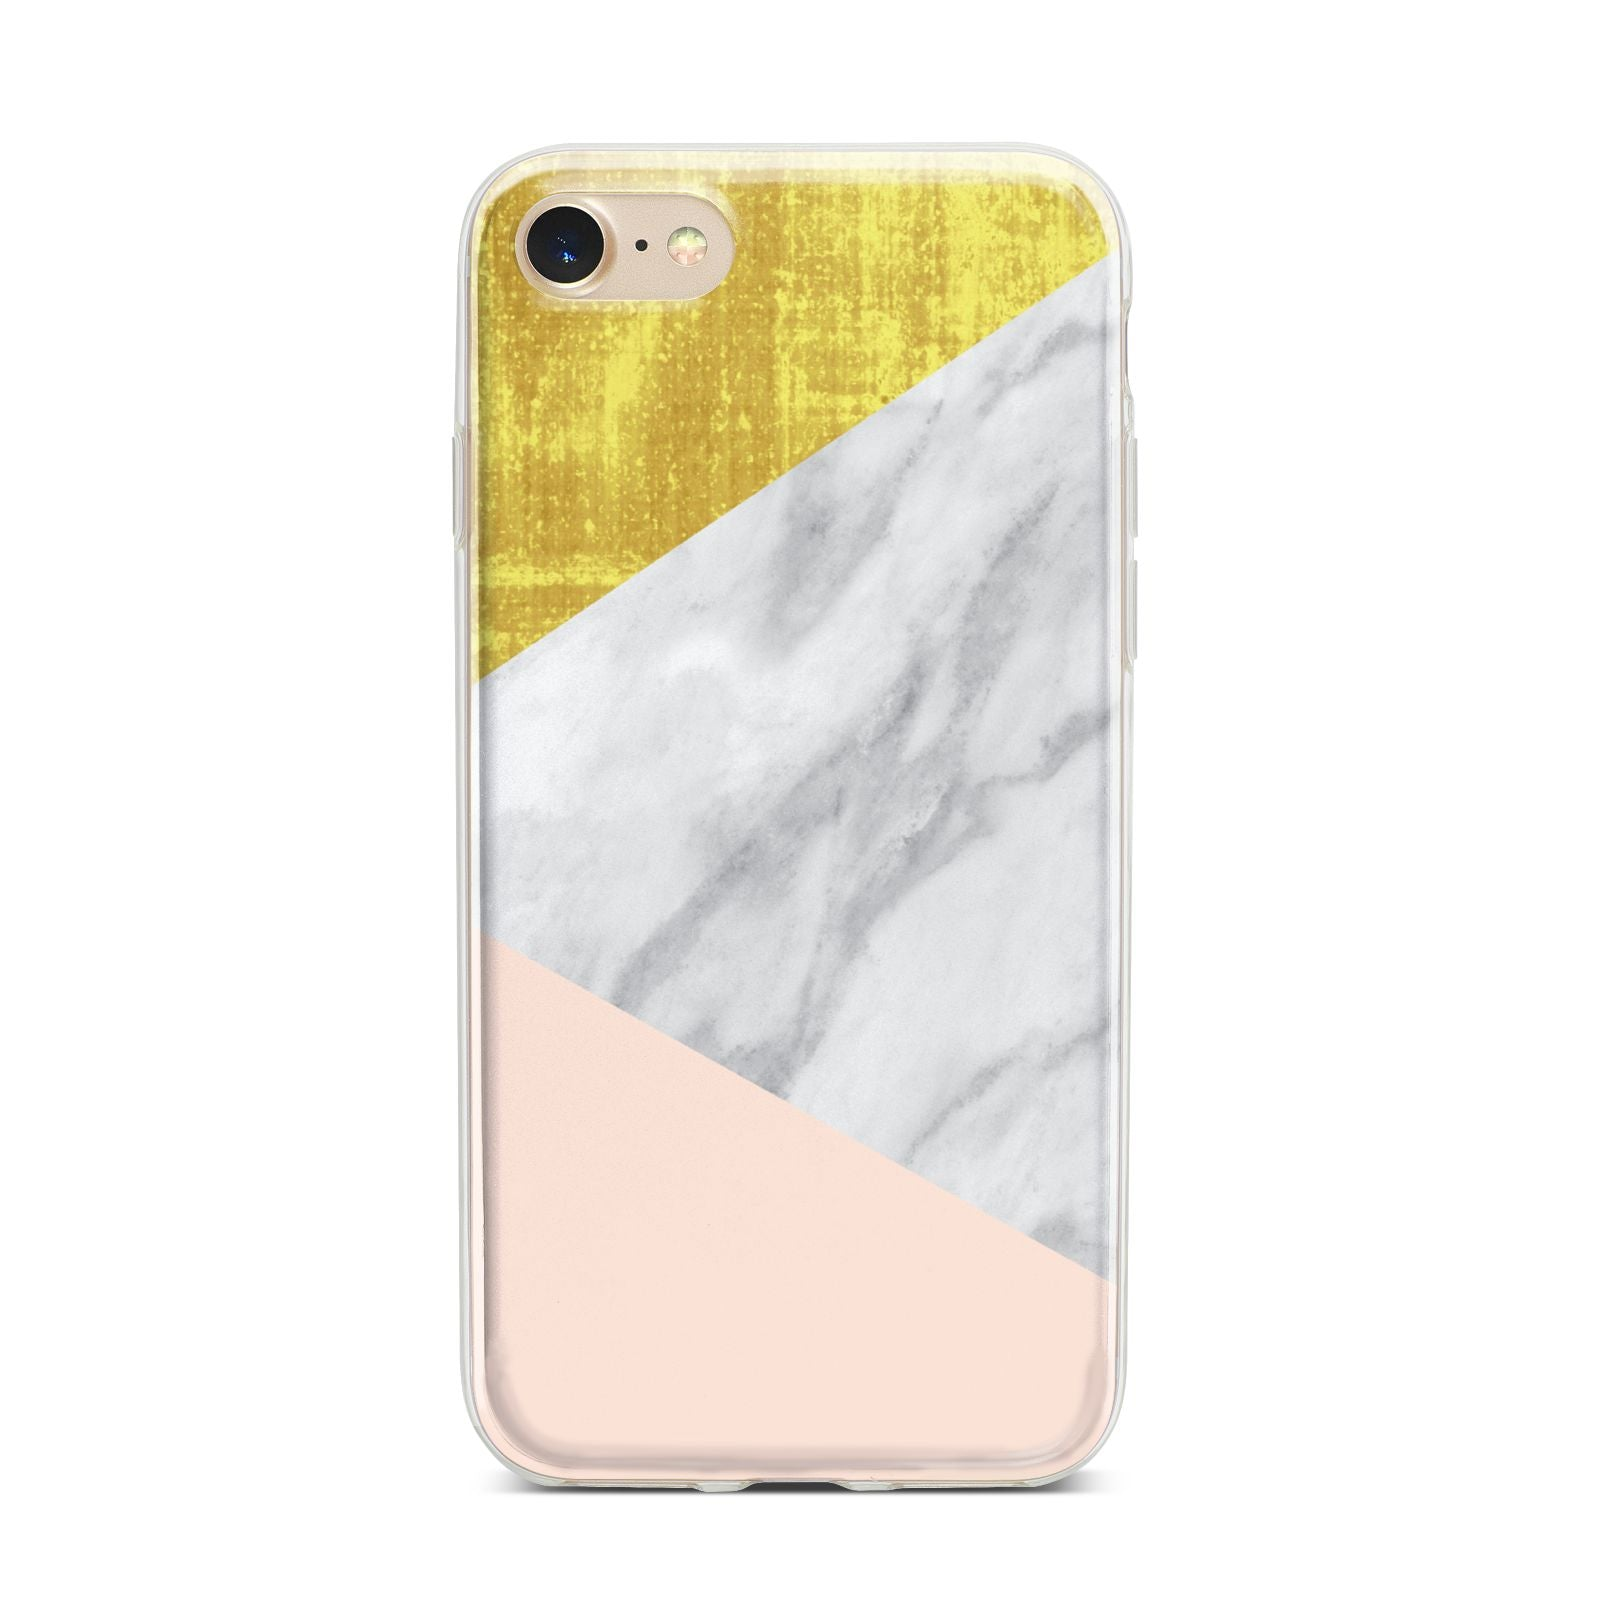 Marble White Gold Foil Peach iPhone 7 Bumper Case on Gold iPhone